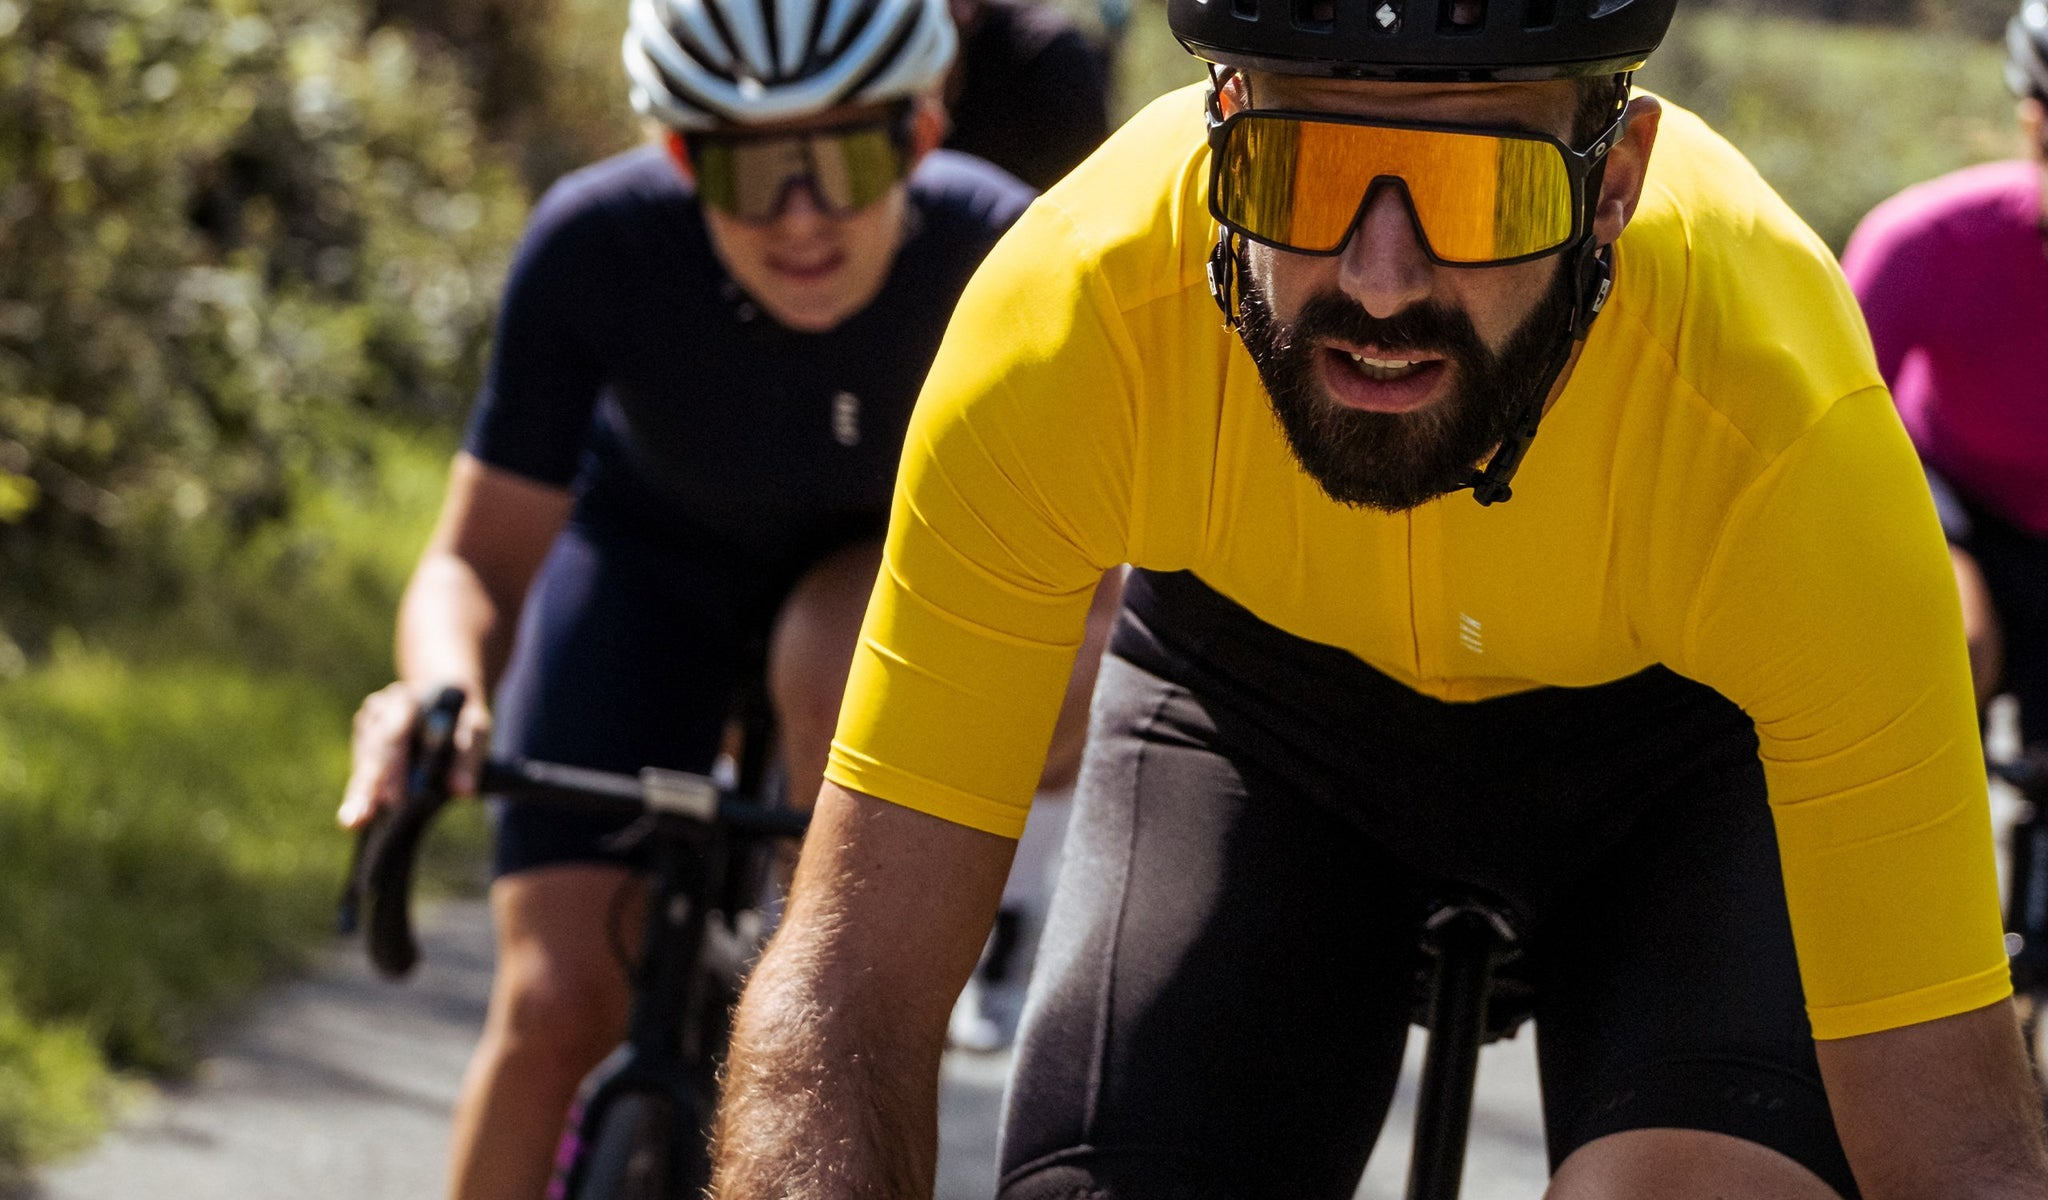 MAAP Training Short Sleeve Cycling Jersey in Solar Yellow for everyday riding.